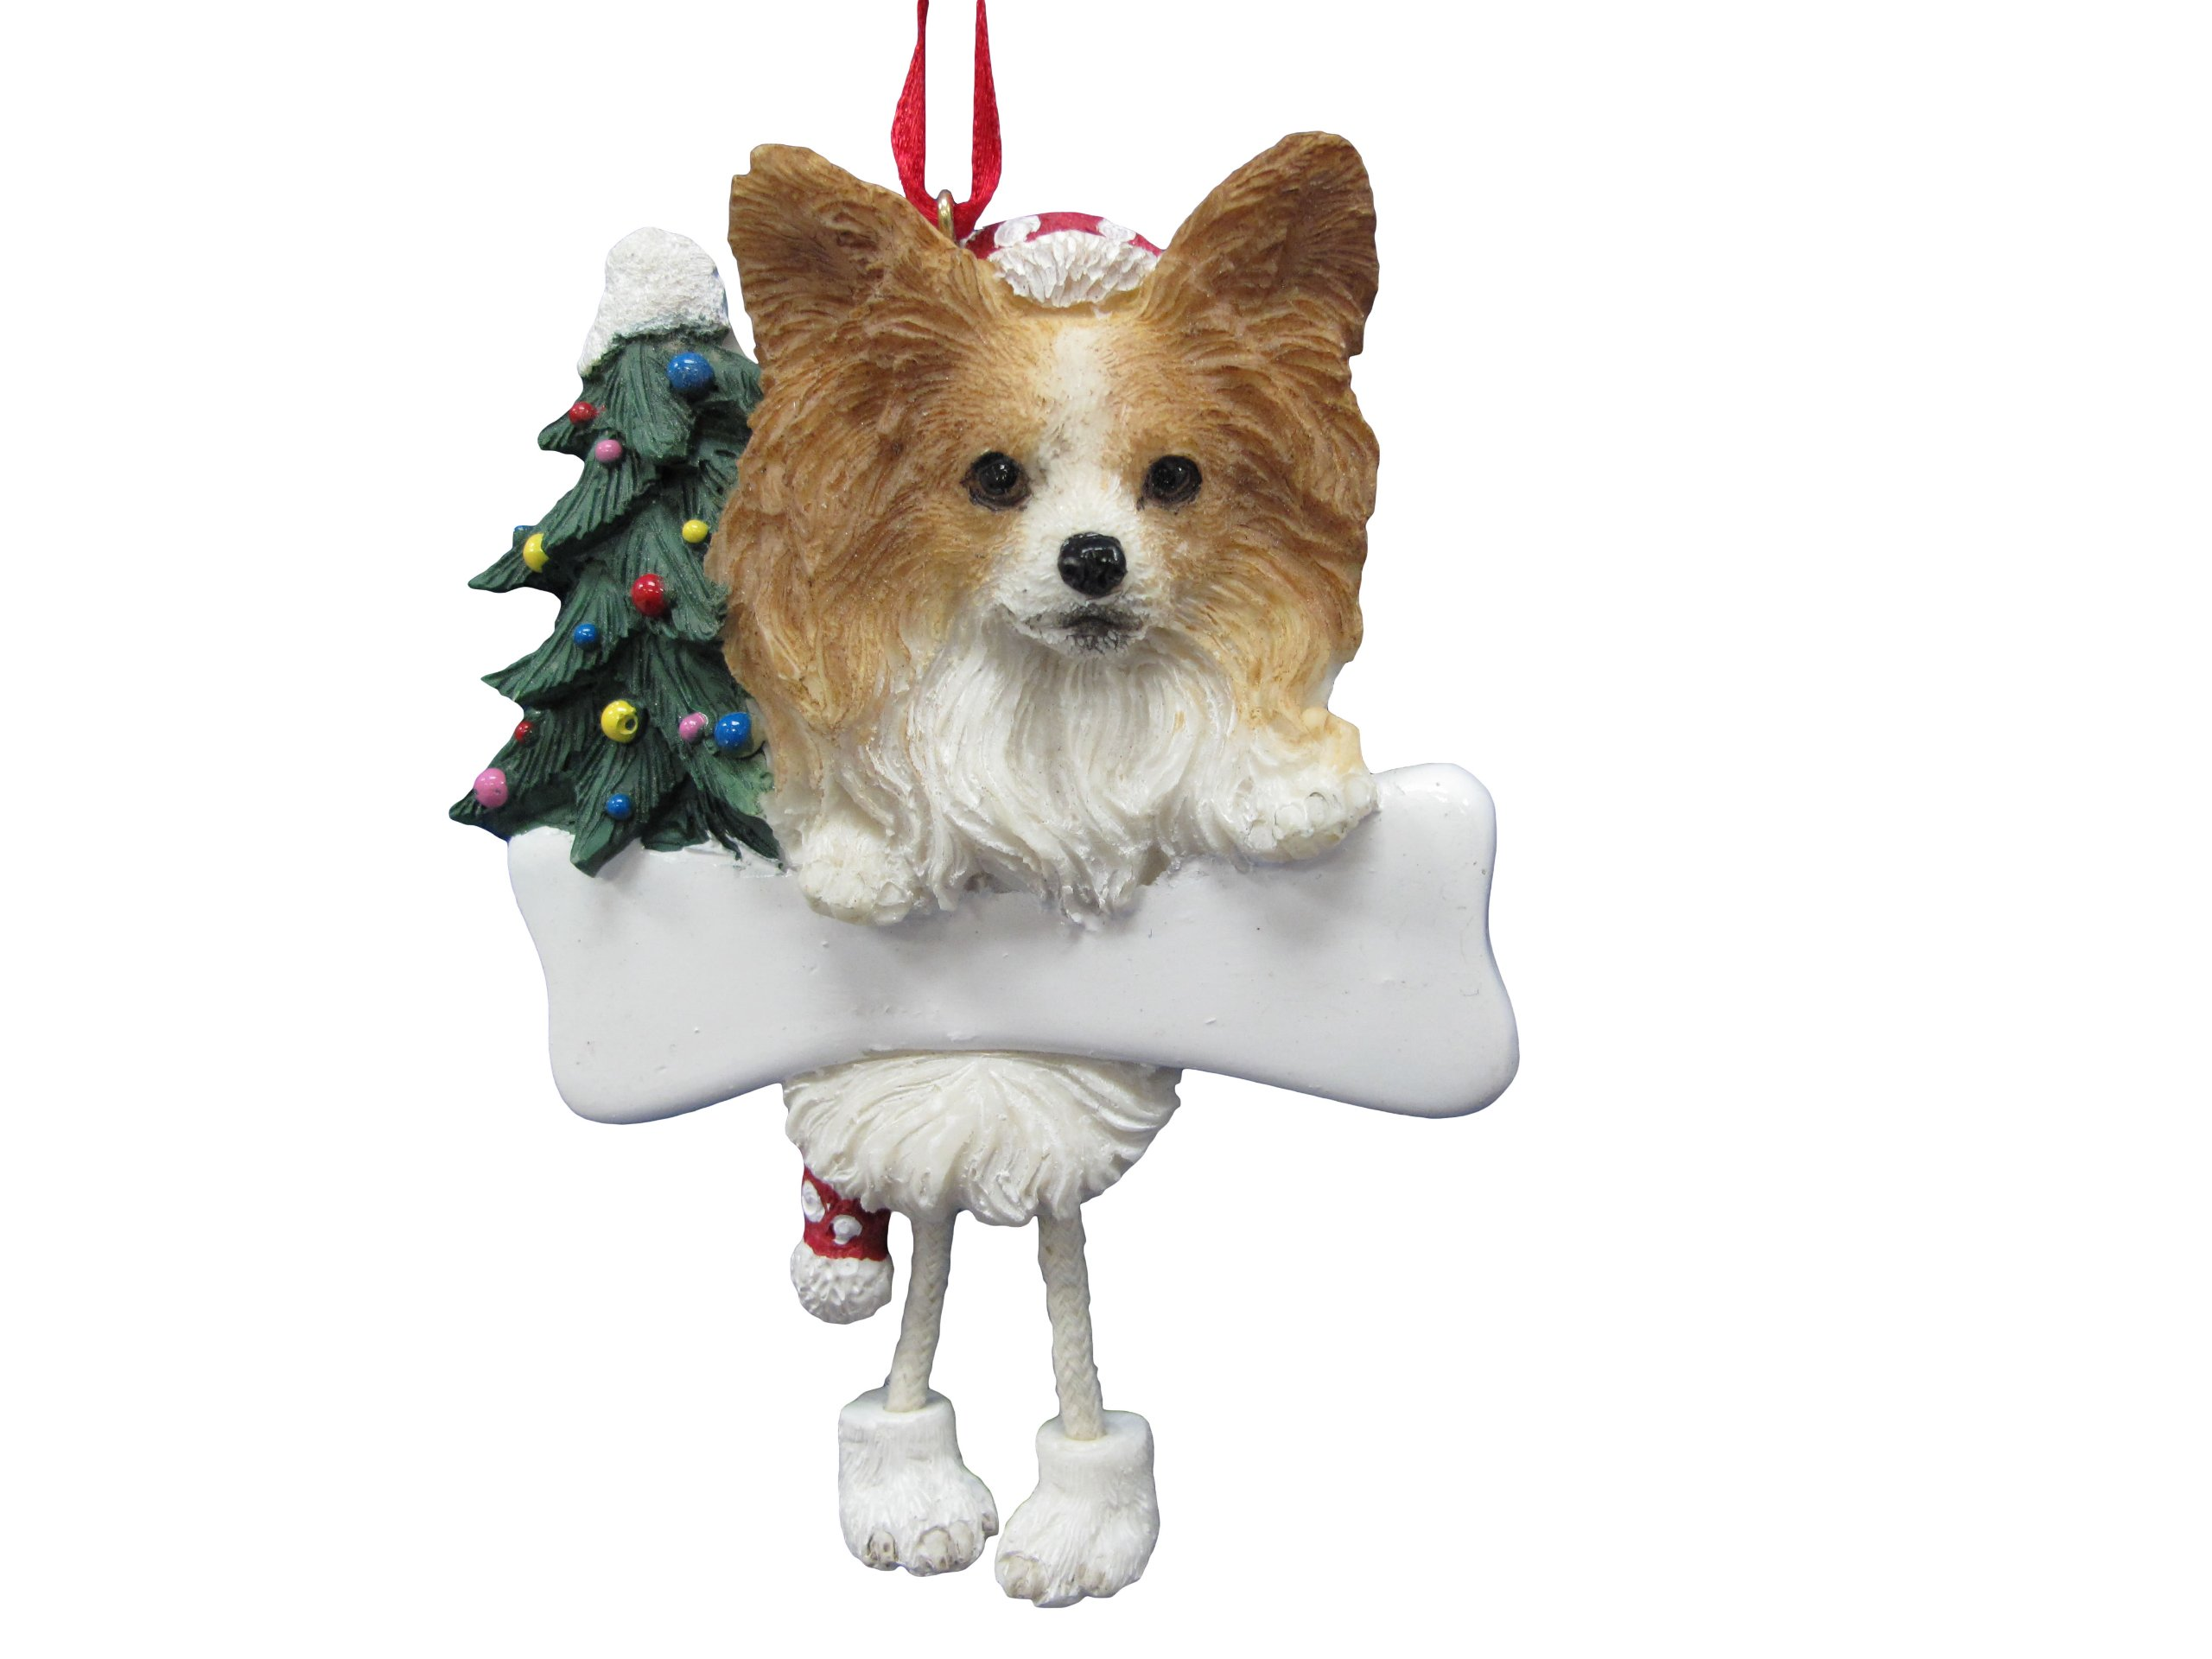 Papillion-Ornament-with-Unique-Dangling-Legs-Hand-Painted-and-Easily-Personalized-Christmas-Ornament